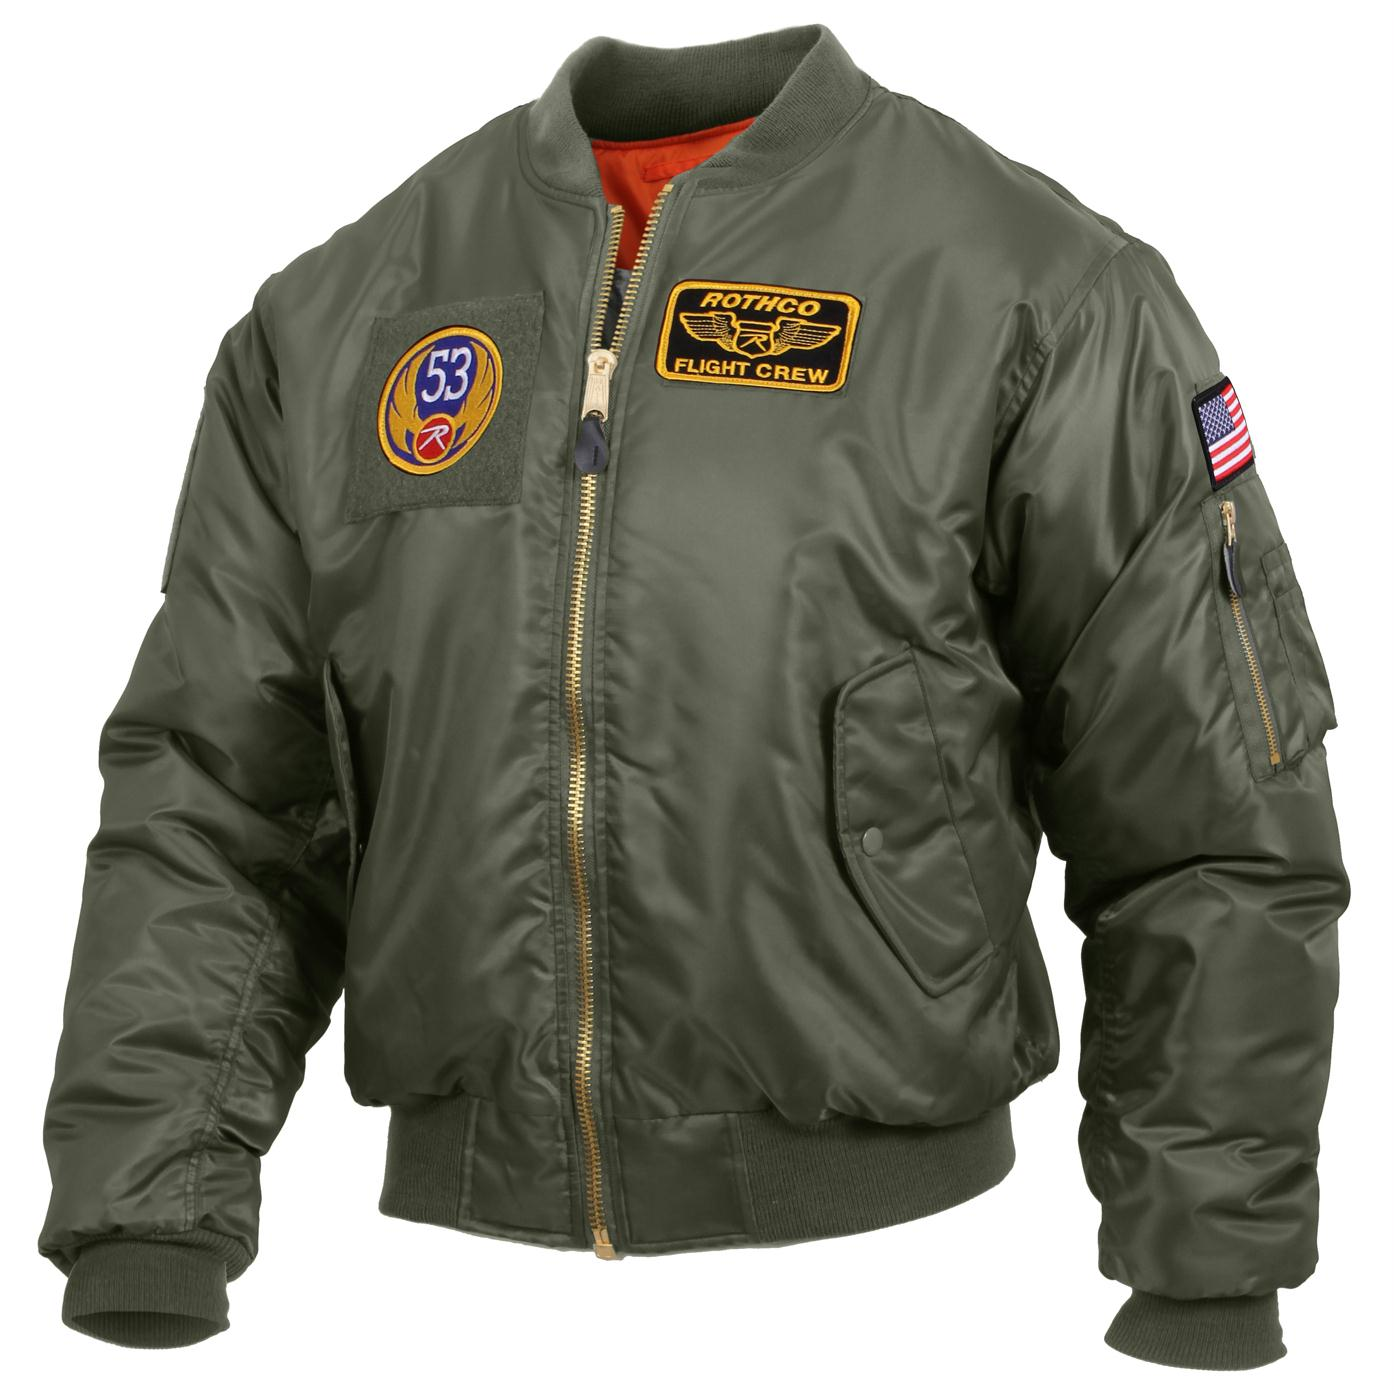 Rothco MA-1 Flight Jacket with Patches - Sage Green / 3XL